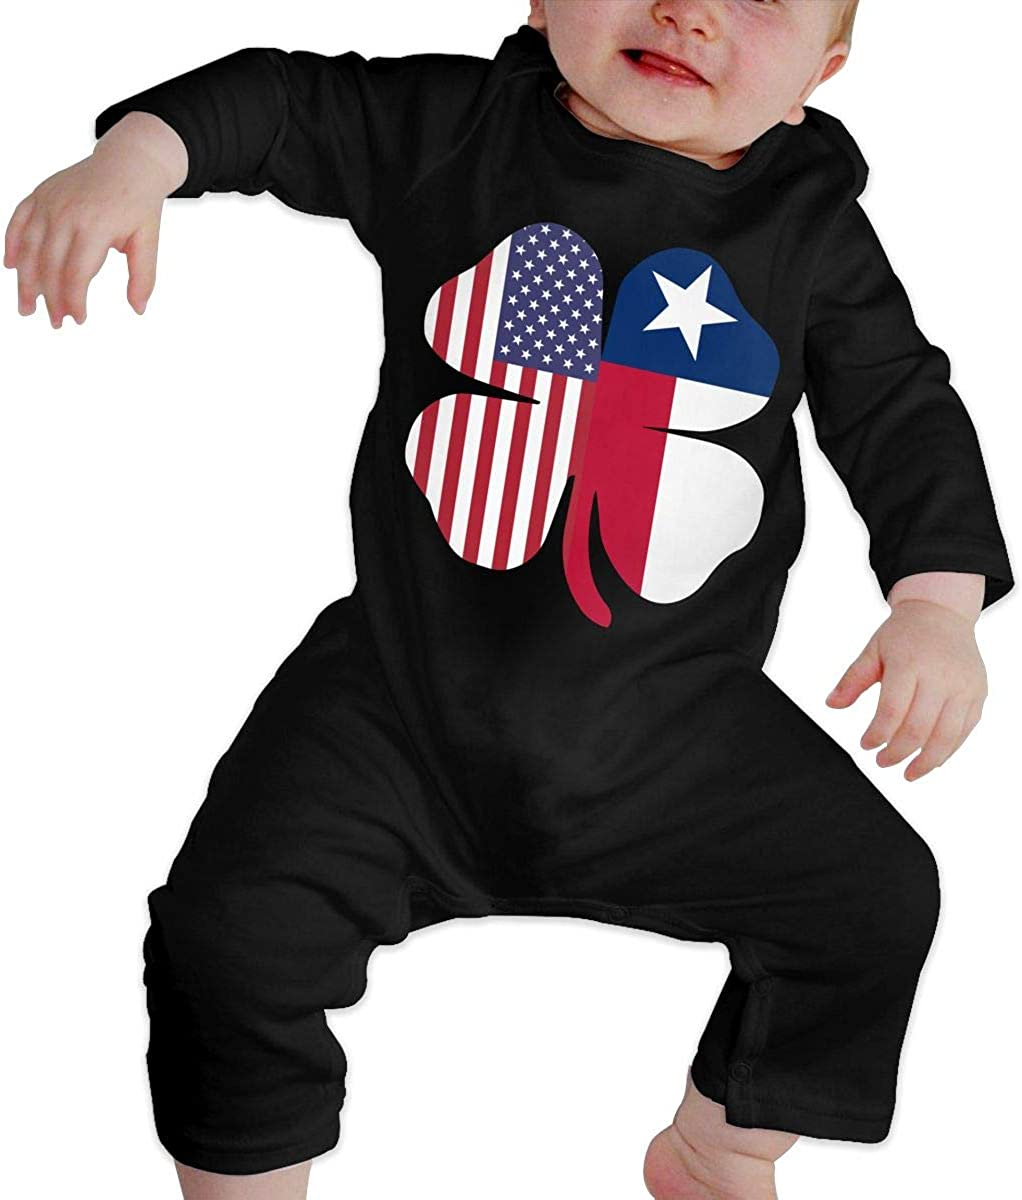 American Texas Flag Shamrock Organic One-Piece Bodysuits Coverall Outfits BKNGDG8Q Toddler Baby Boy Romper Jumpsuit